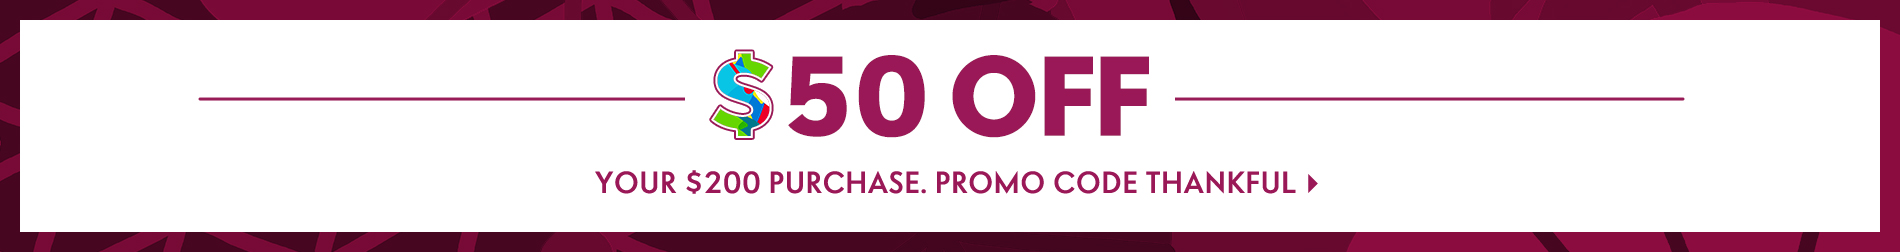 $50 off your $200 purchase. Promo code THANKSFUL